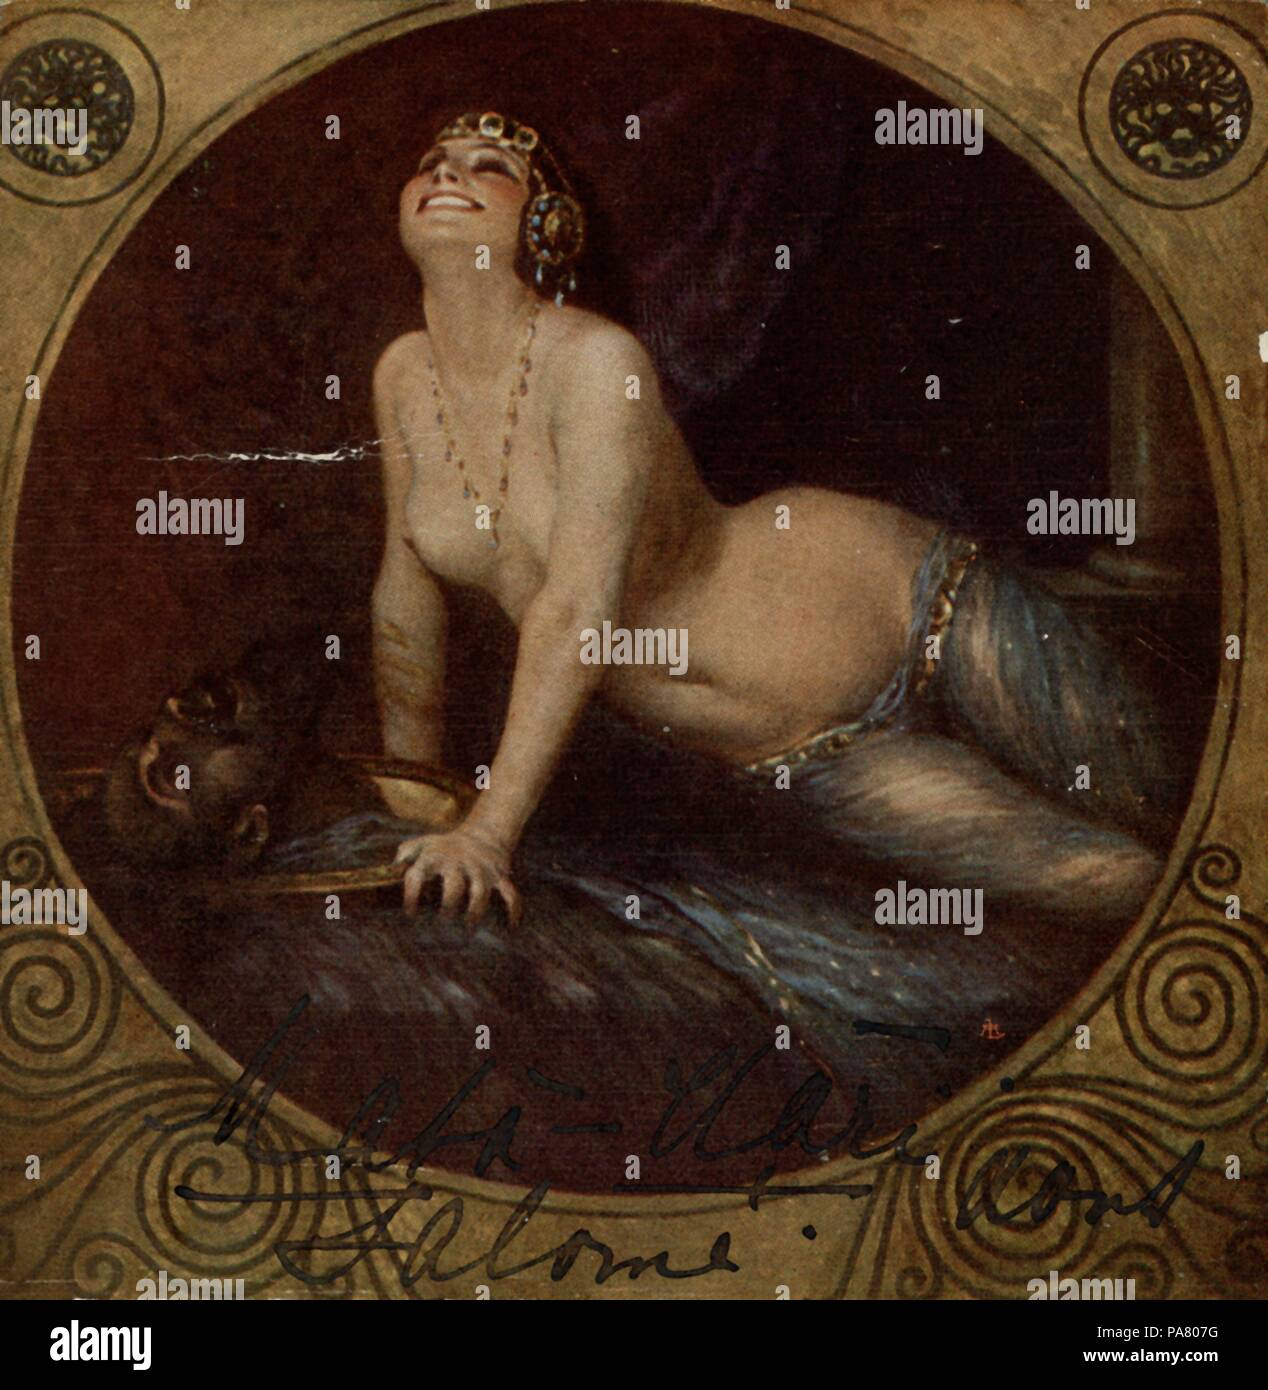 Mata Hari as Salome. Museum: Fries Museum, Leeuwarden. - Stock Image